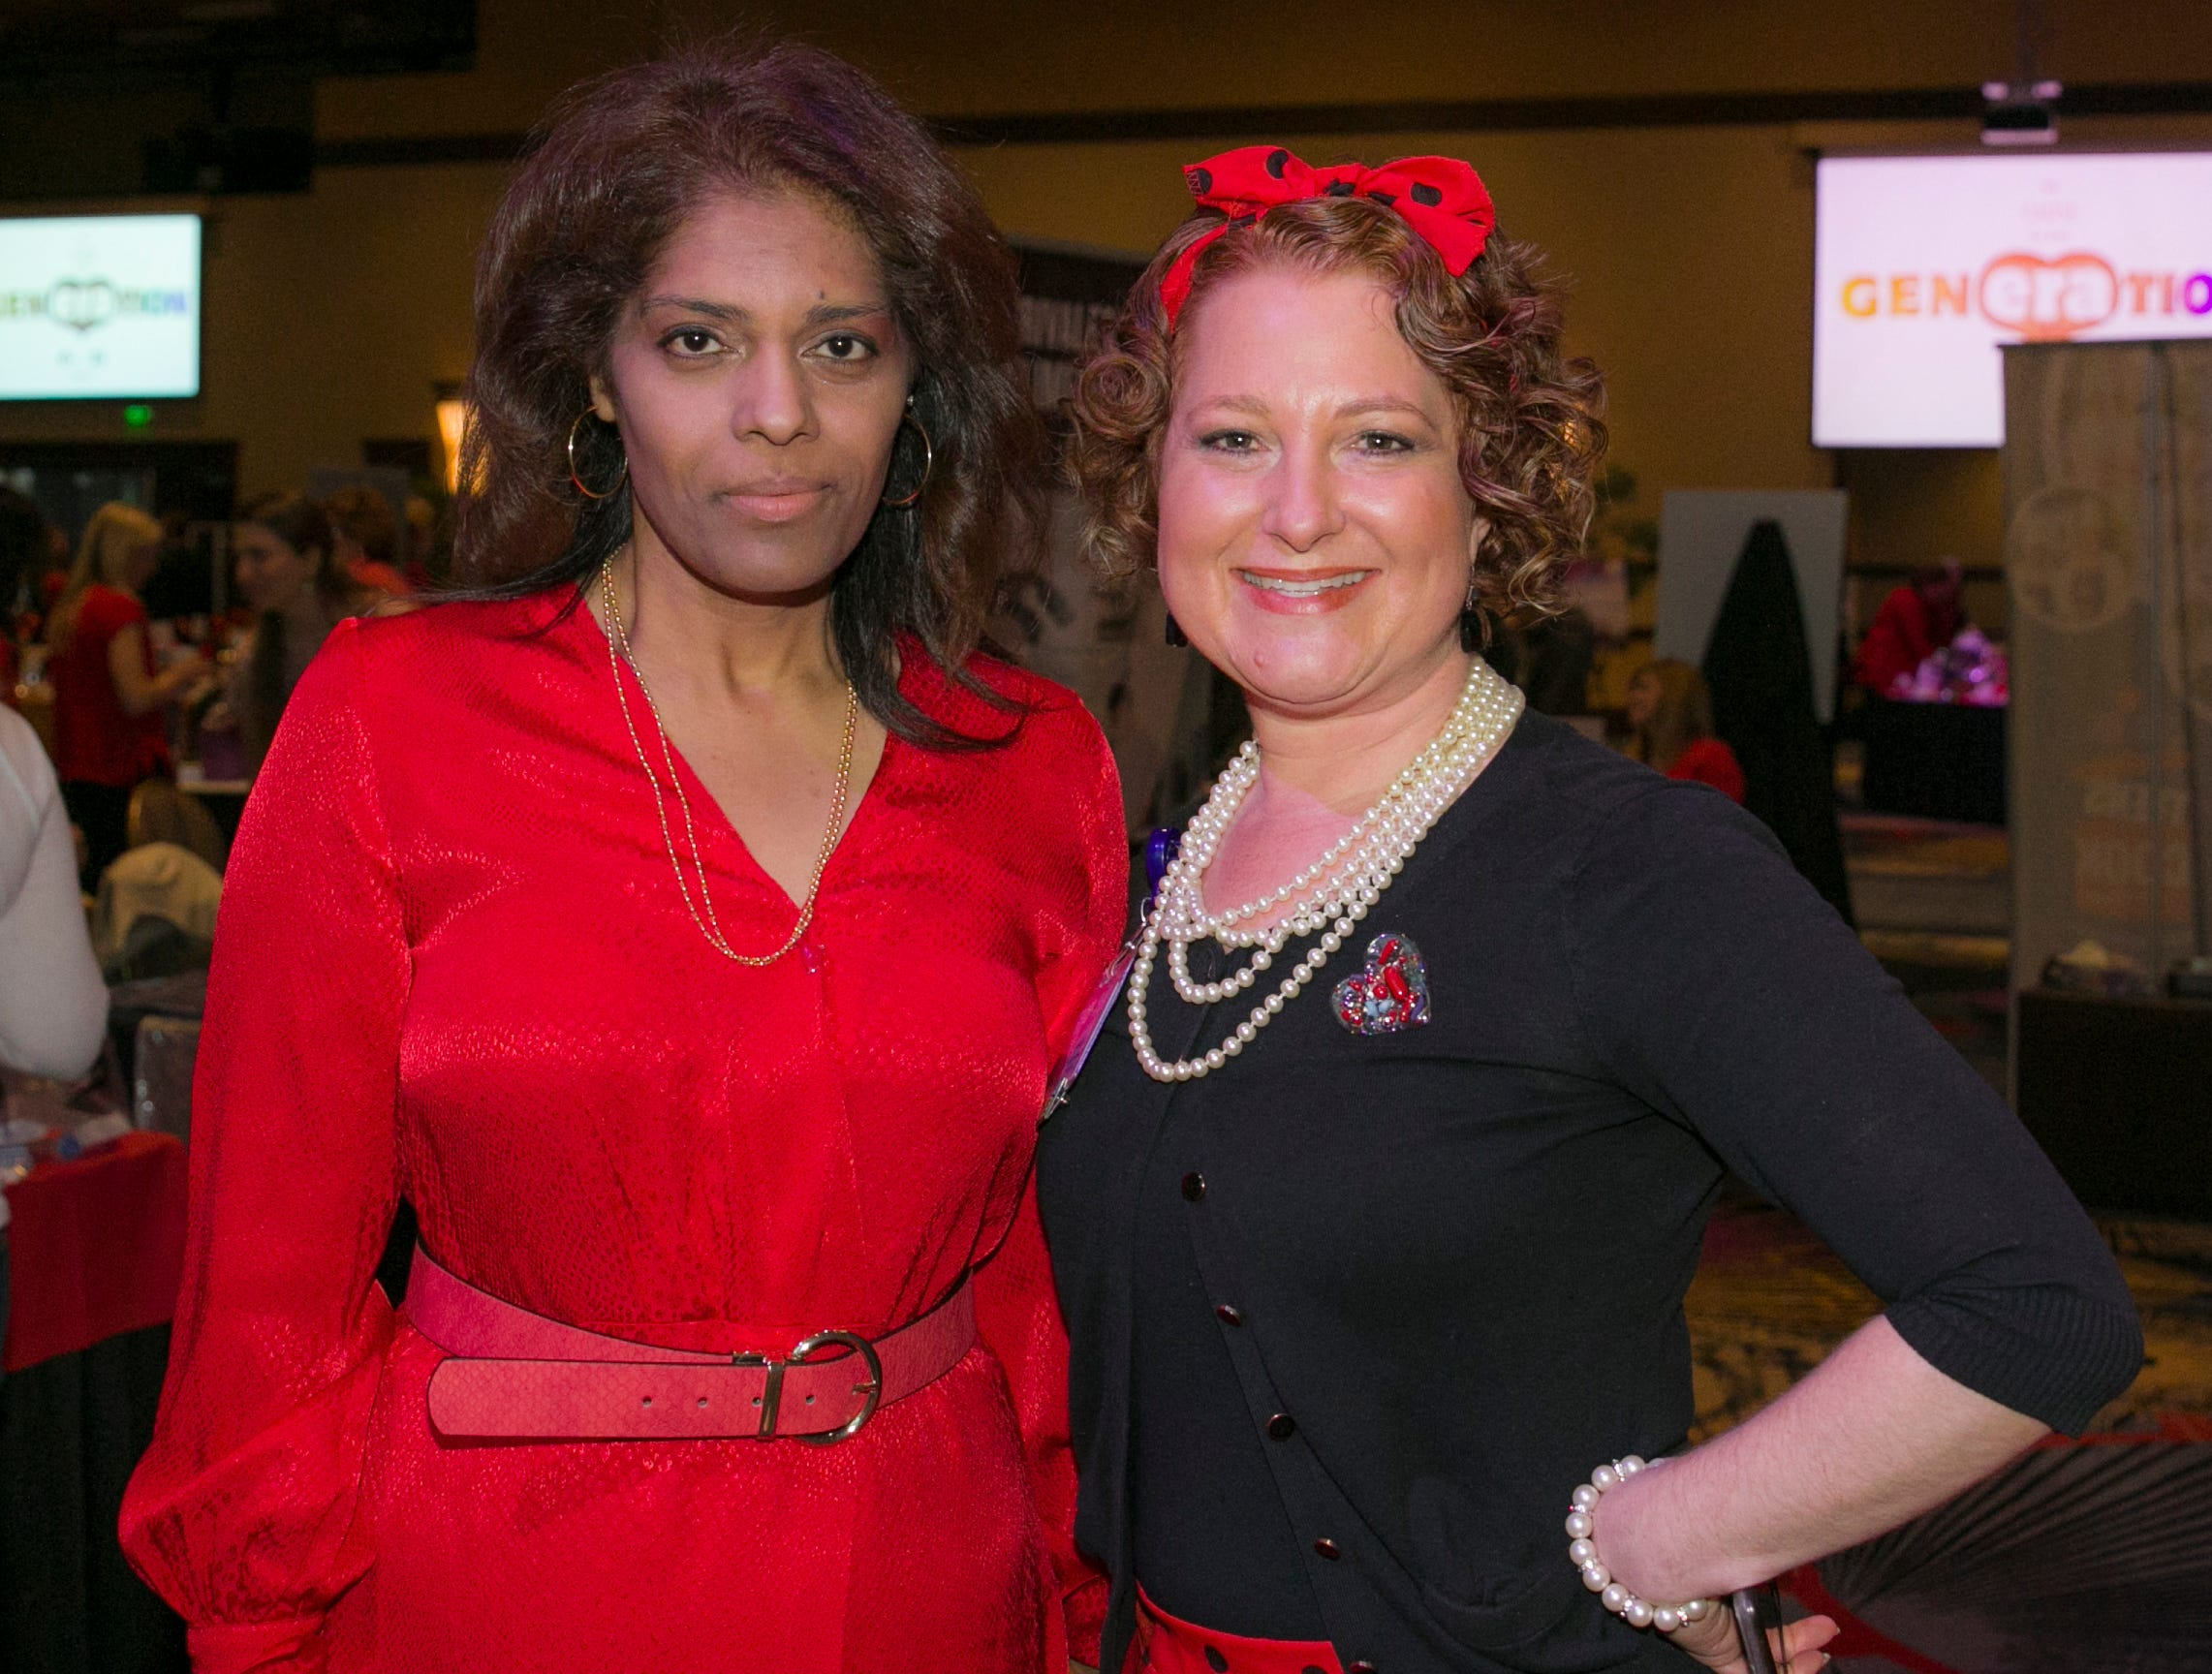 Dr. Kim Nuthi and Robin Krueger during the 15th Annual Go Red for Women Luncheon on Friday March 1, 2019 held at the downtown Reno Ballroom.